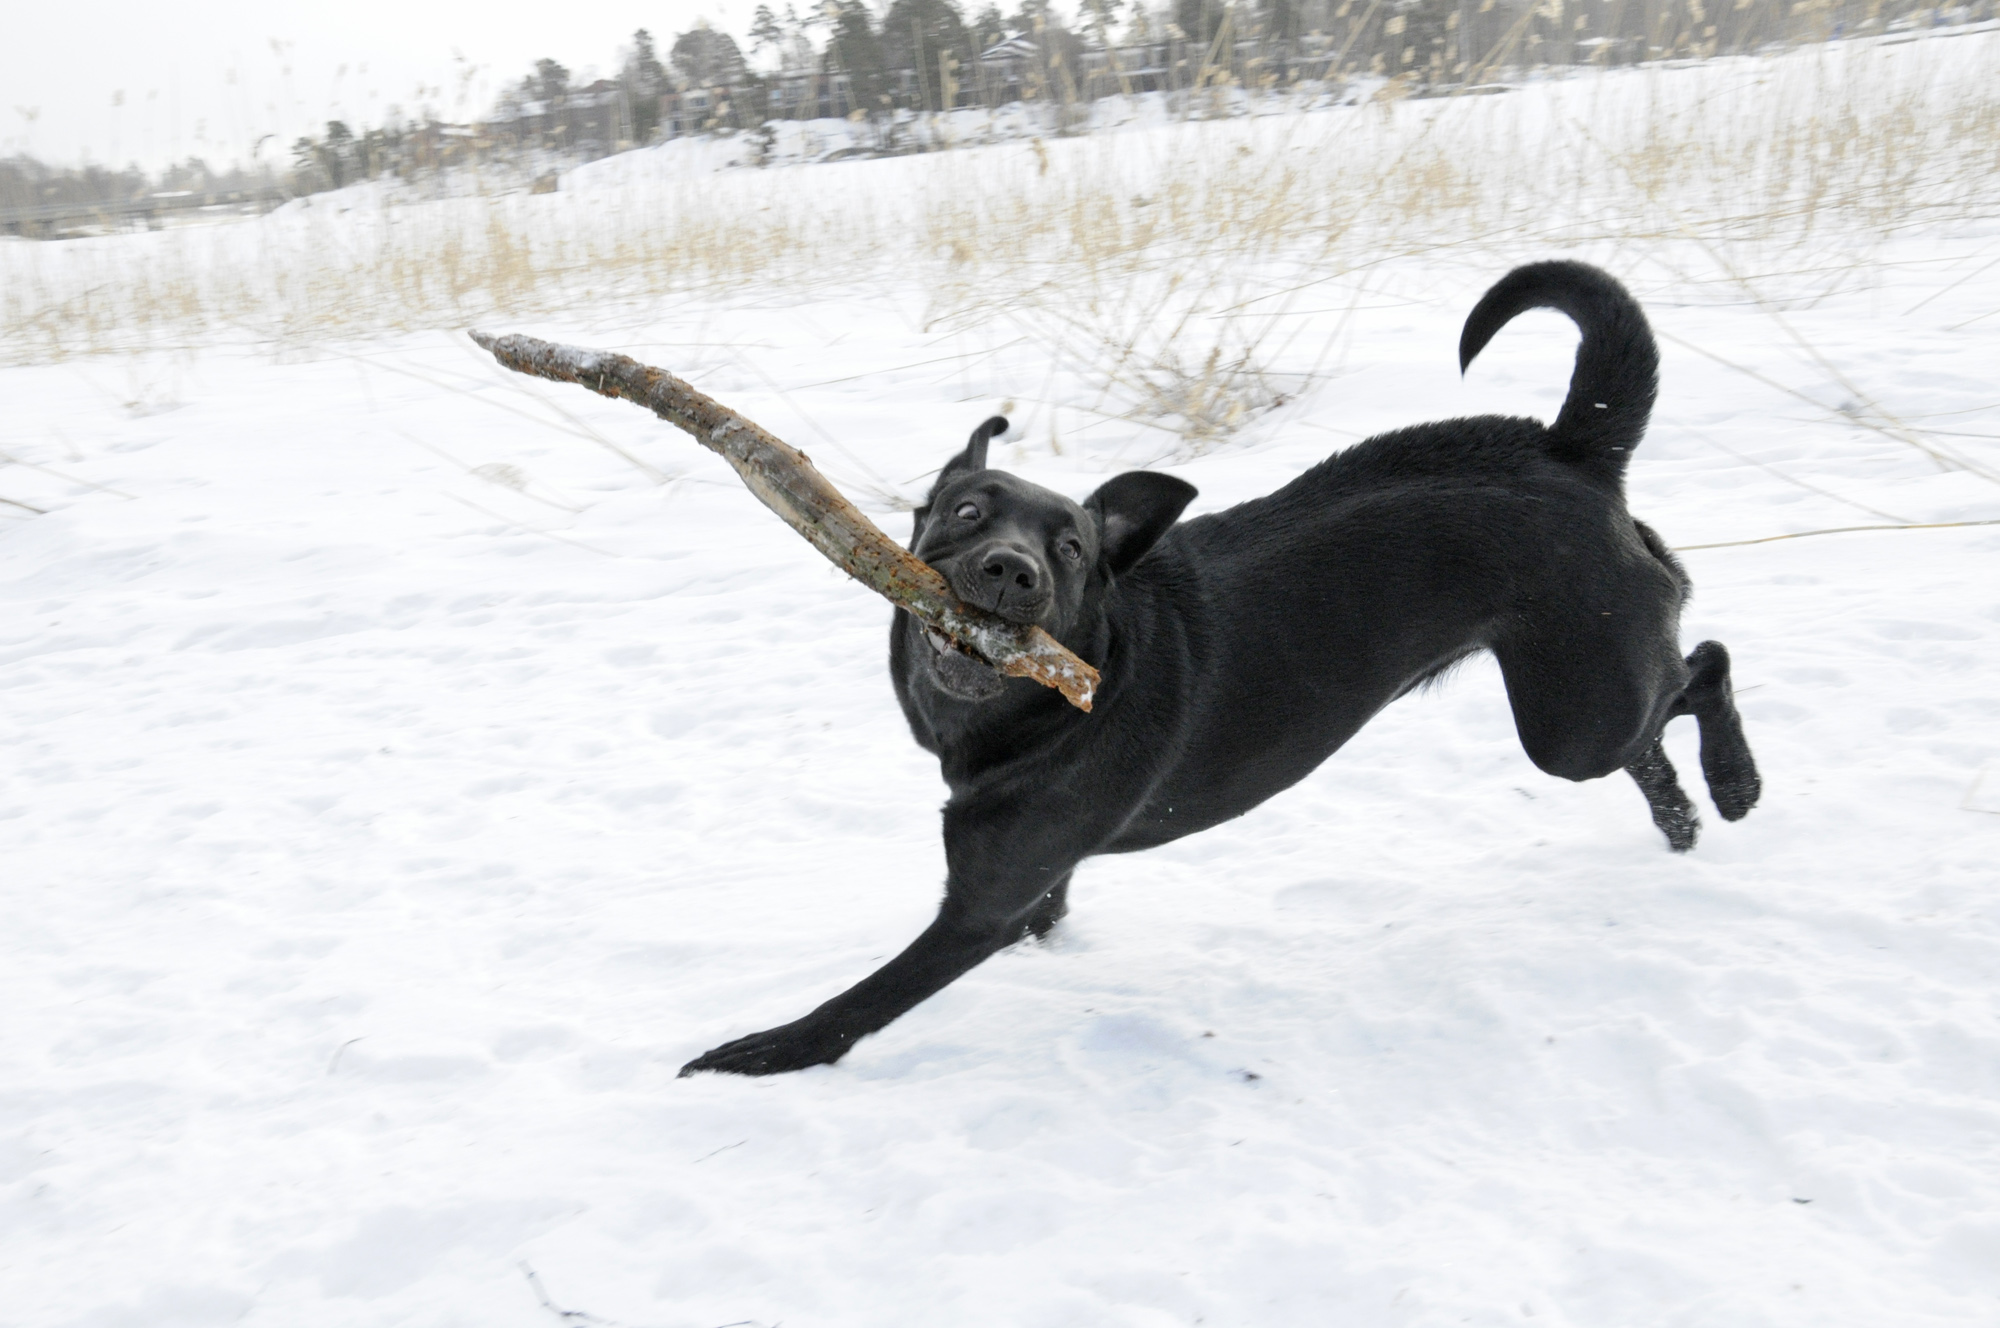 Labrador retriever playing with a stick in snow